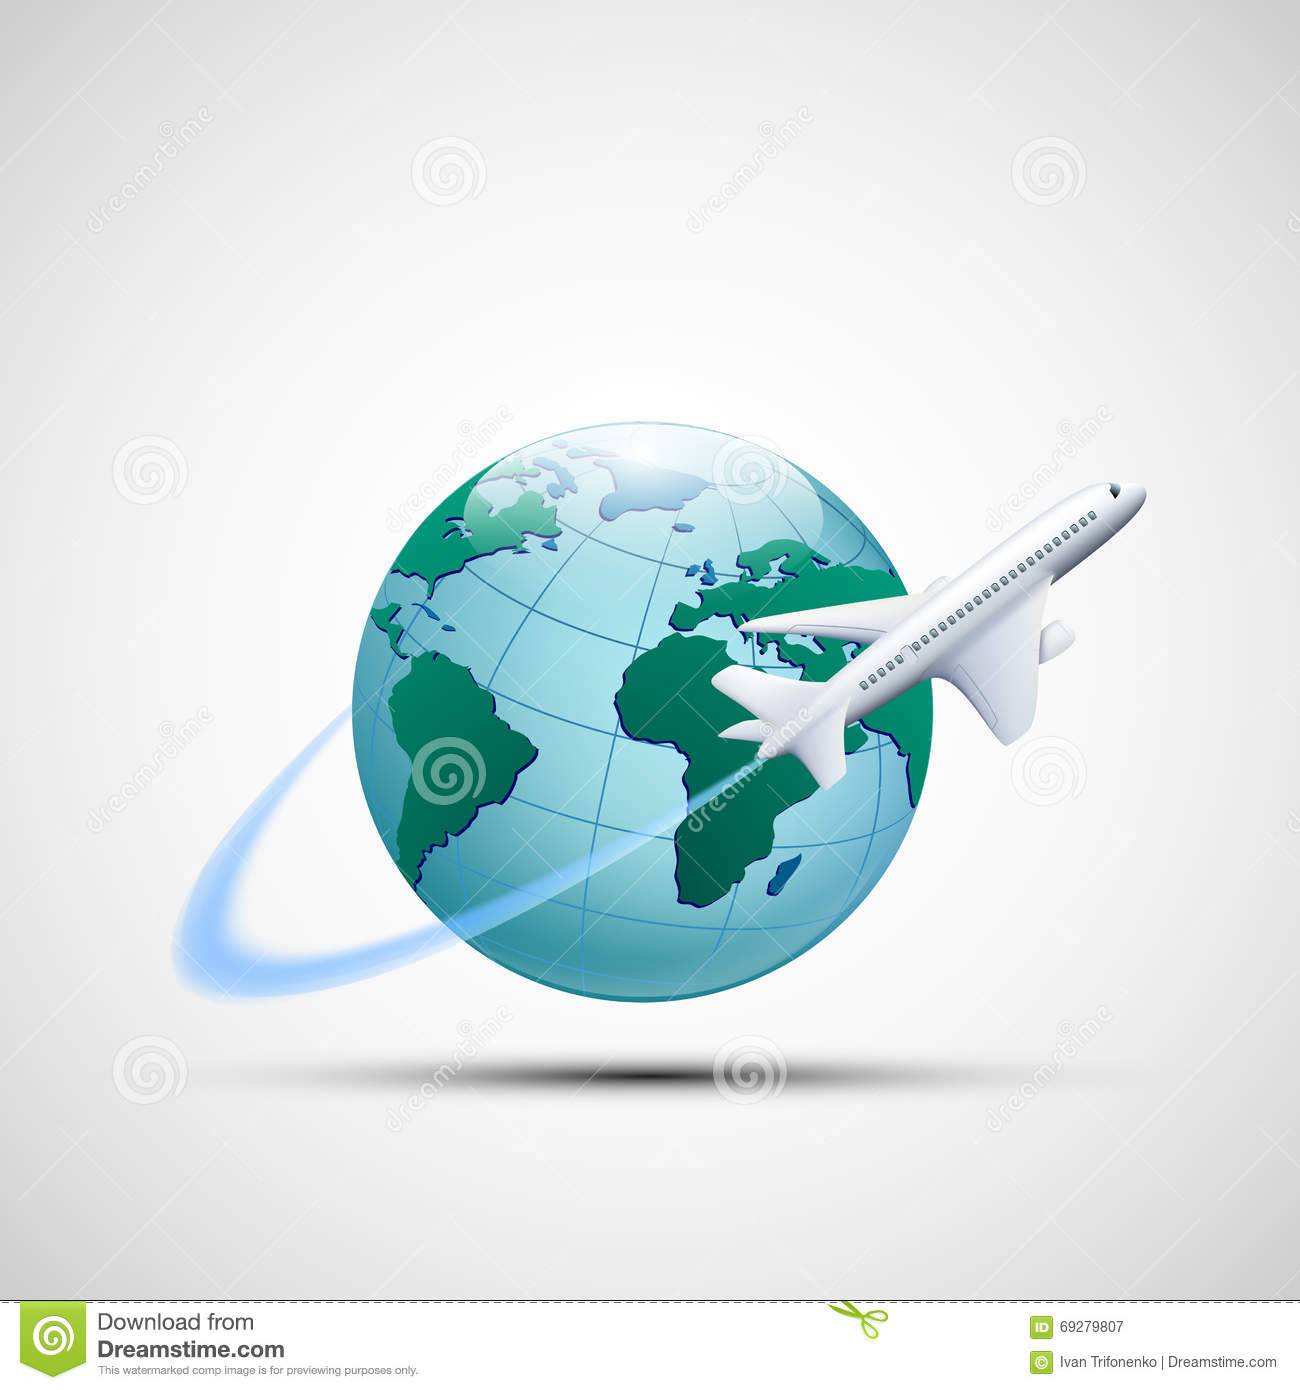 Travel Agency Business Licenses